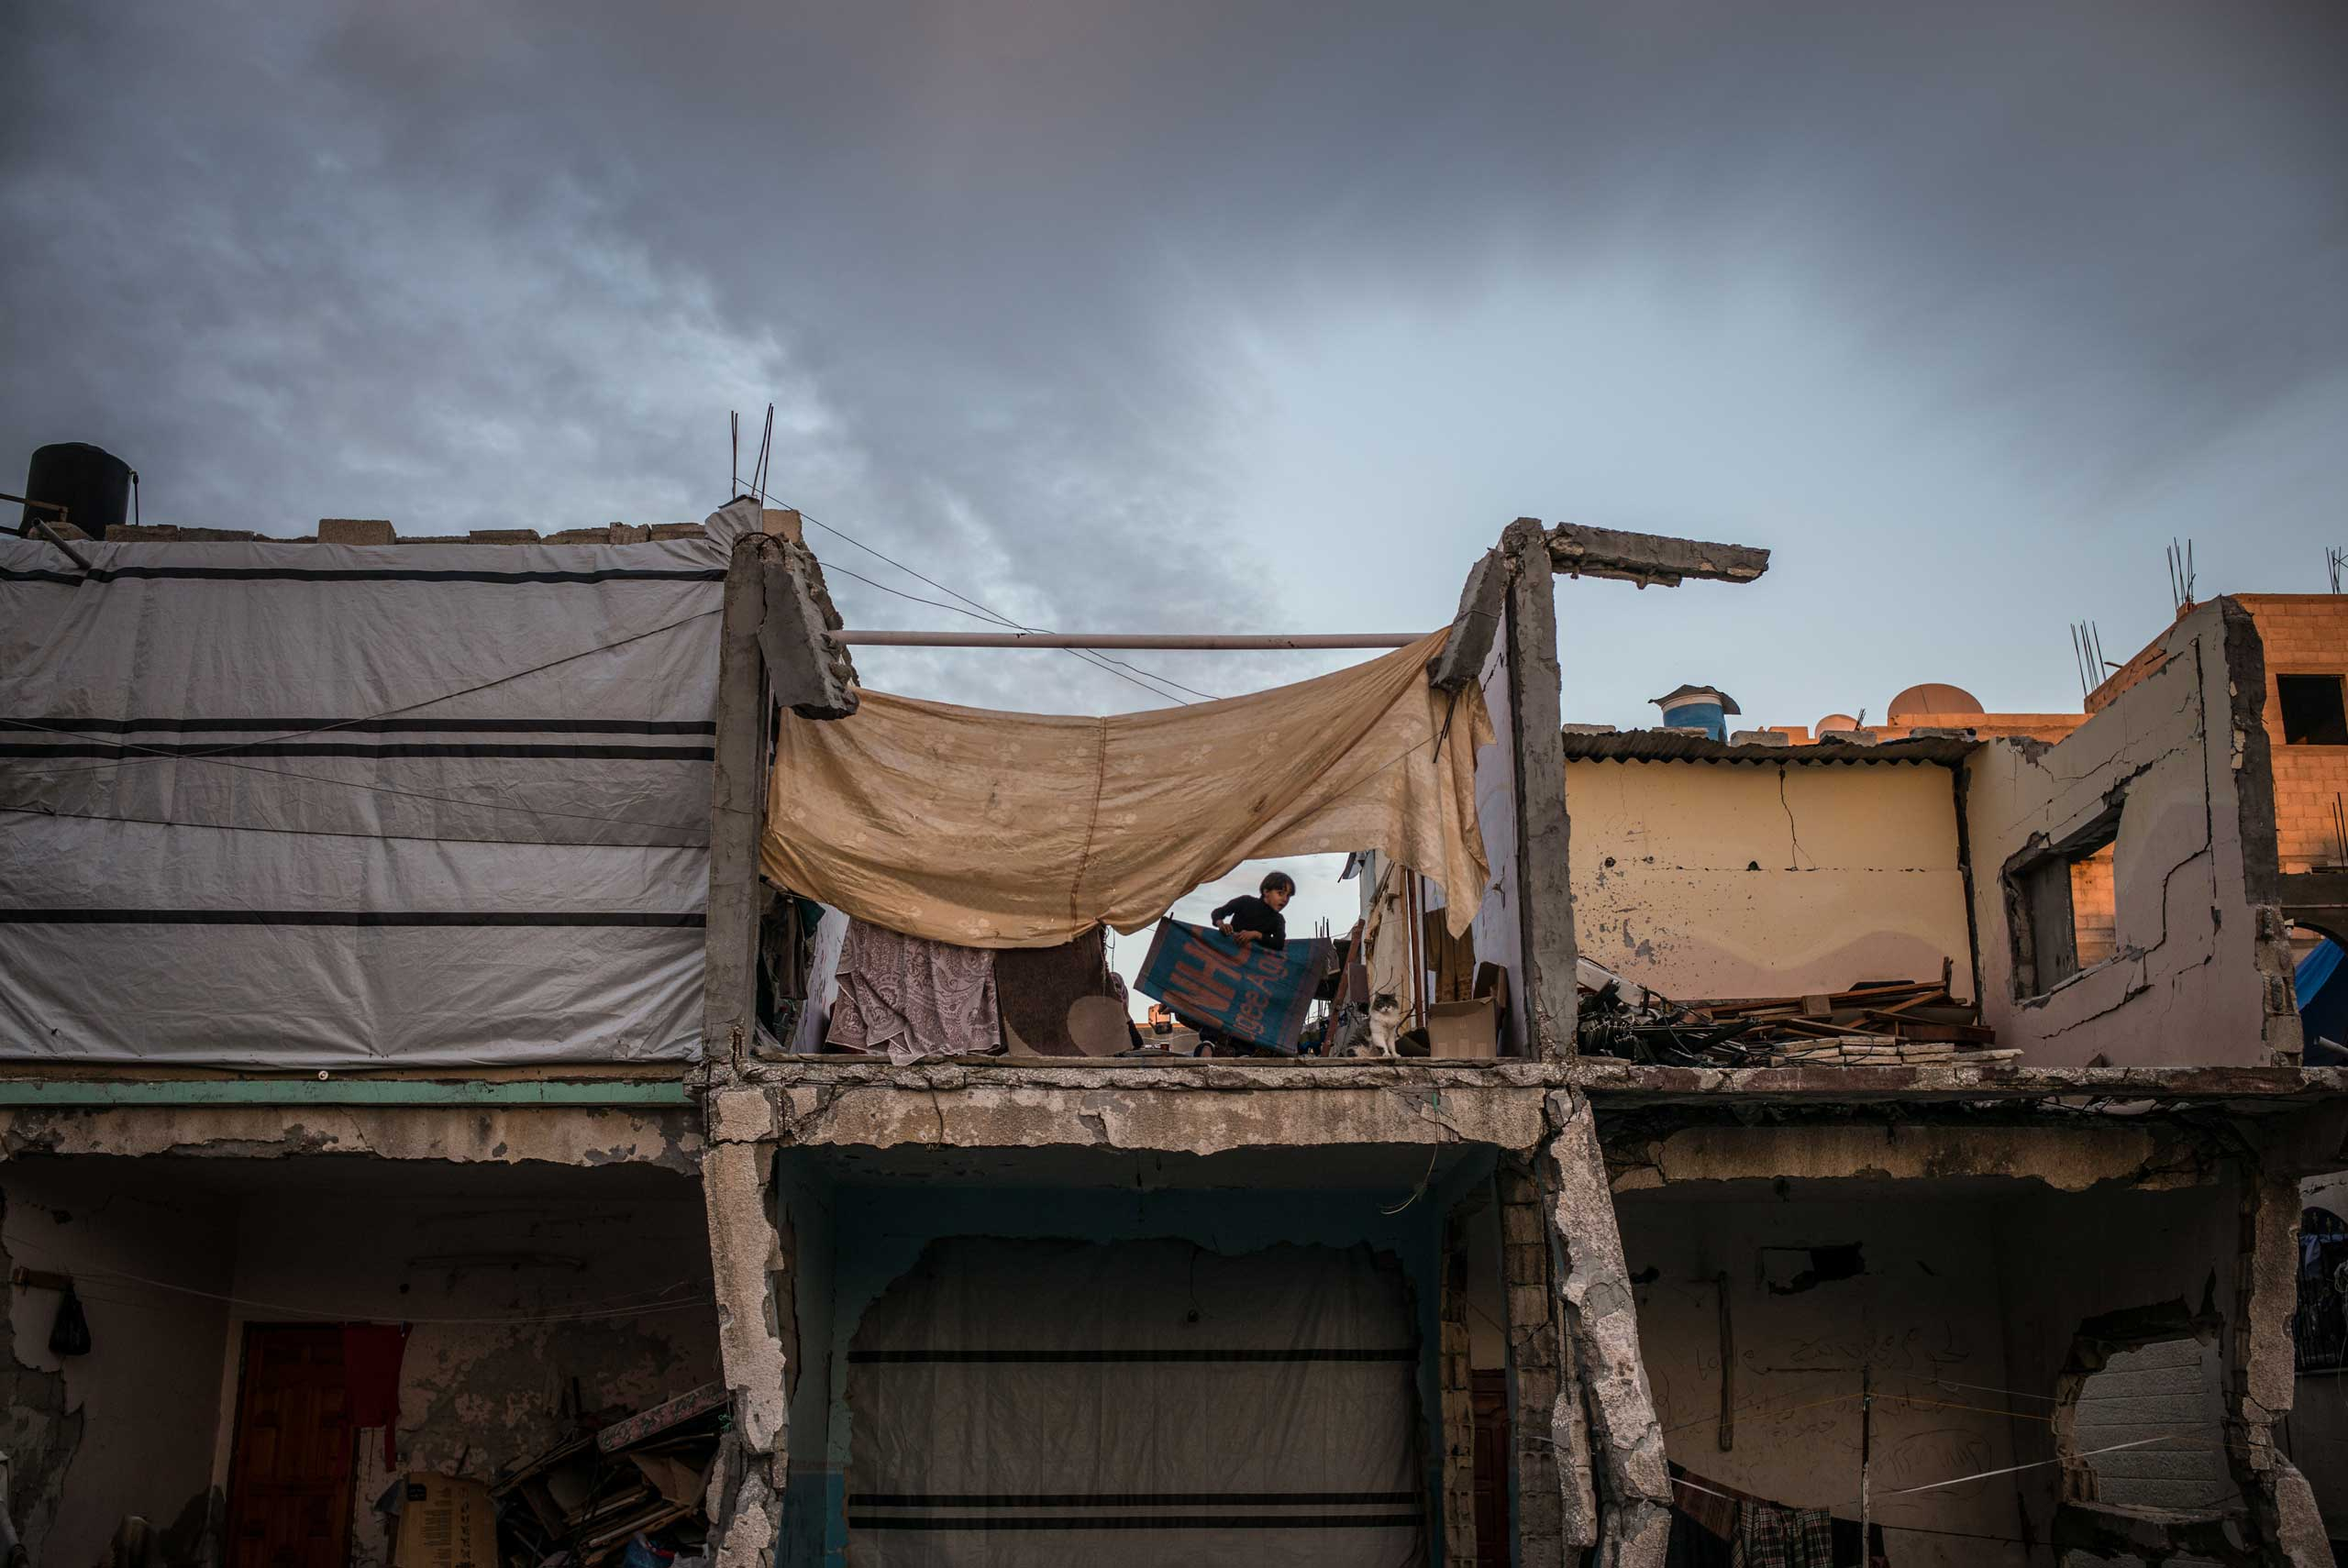 A child is seen in her ravaged house in Khuza'a, in the south of the Gaza Strip. Families are trying to go back to live in their houses. The Gaza Strip, December 2014.